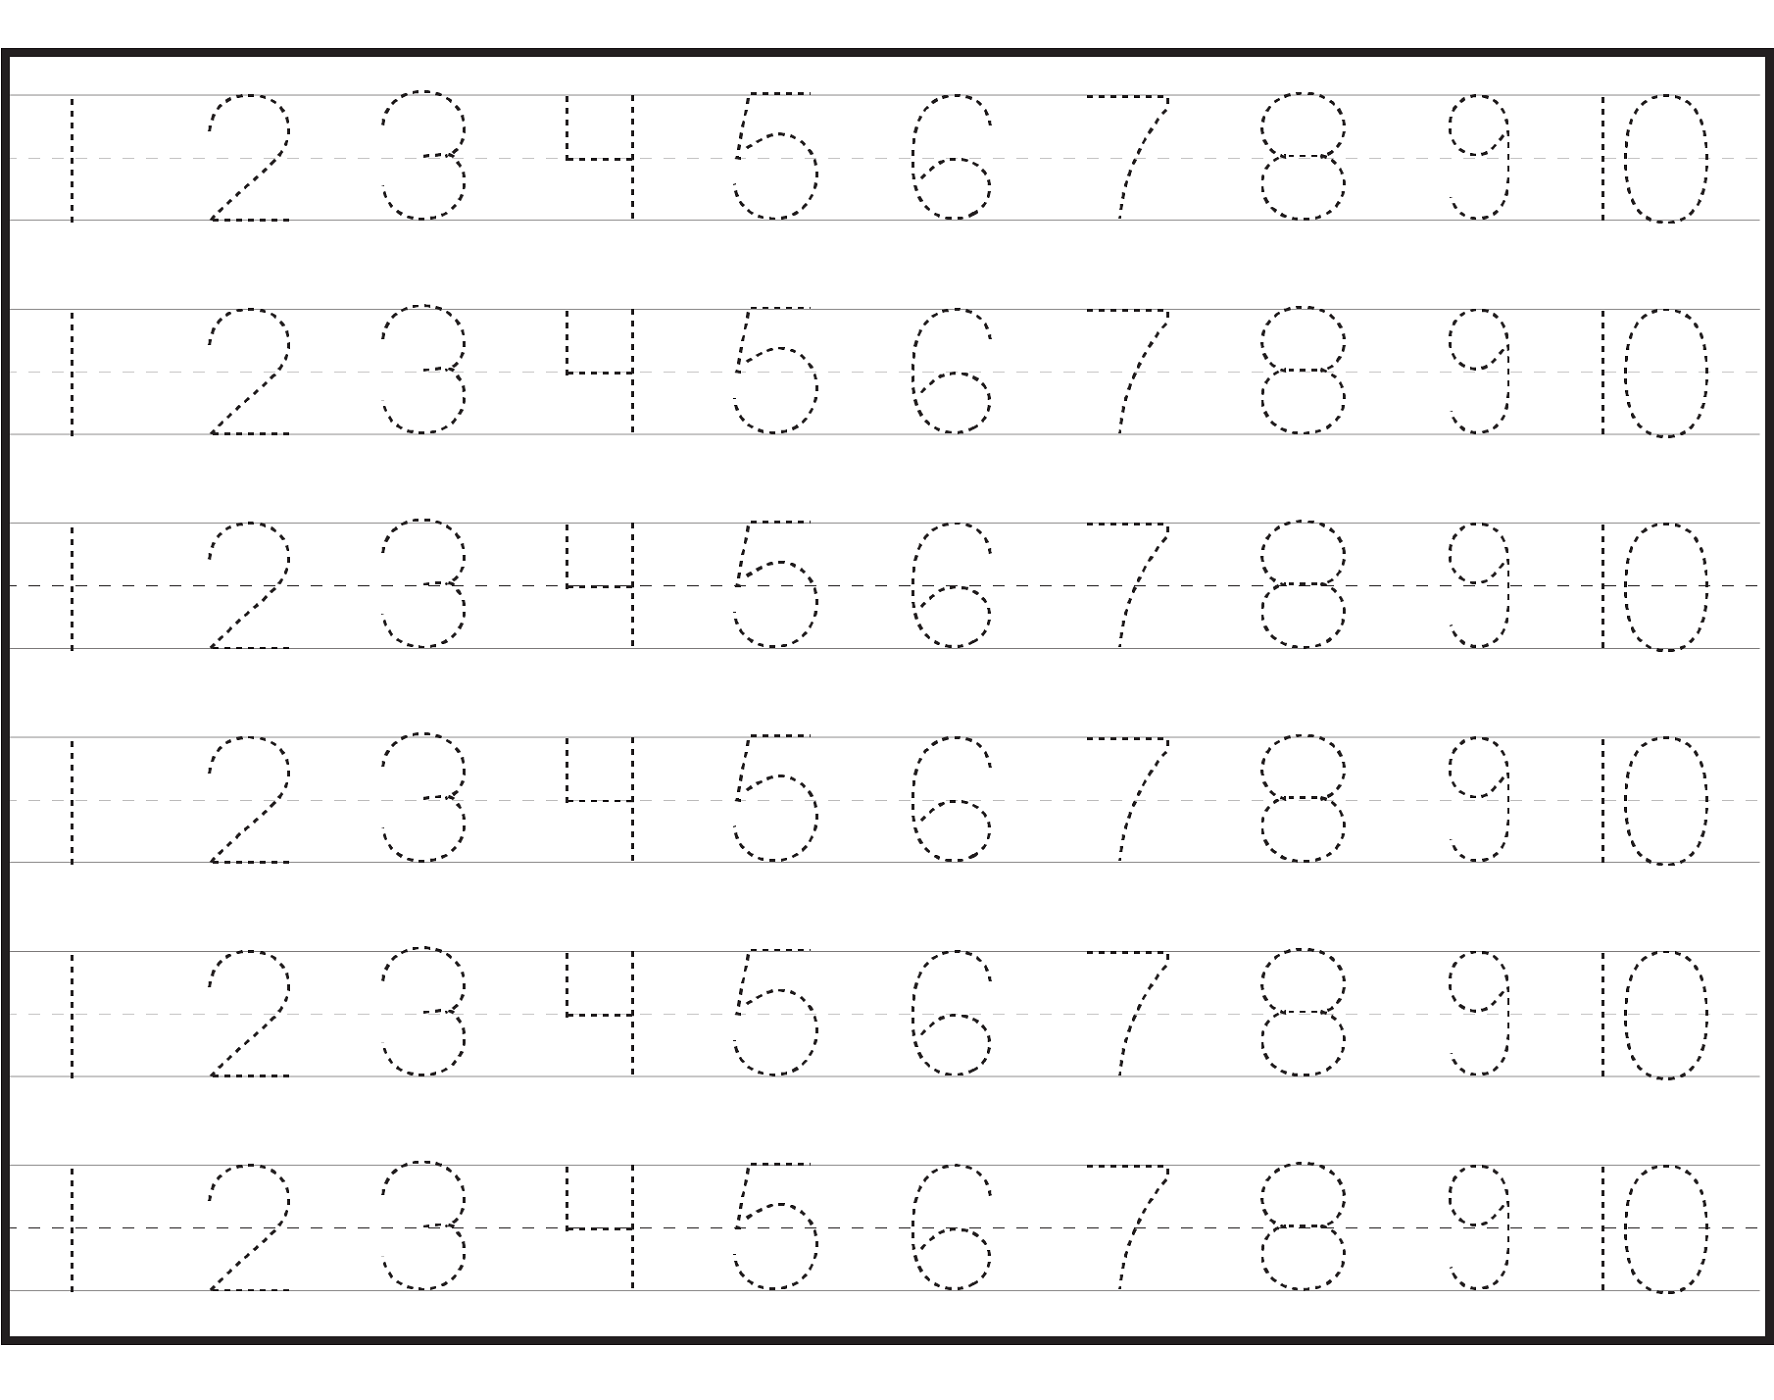 Worksheets Pre K Worksheets Numbers pre k worksheets number activity shelter numbers numbers